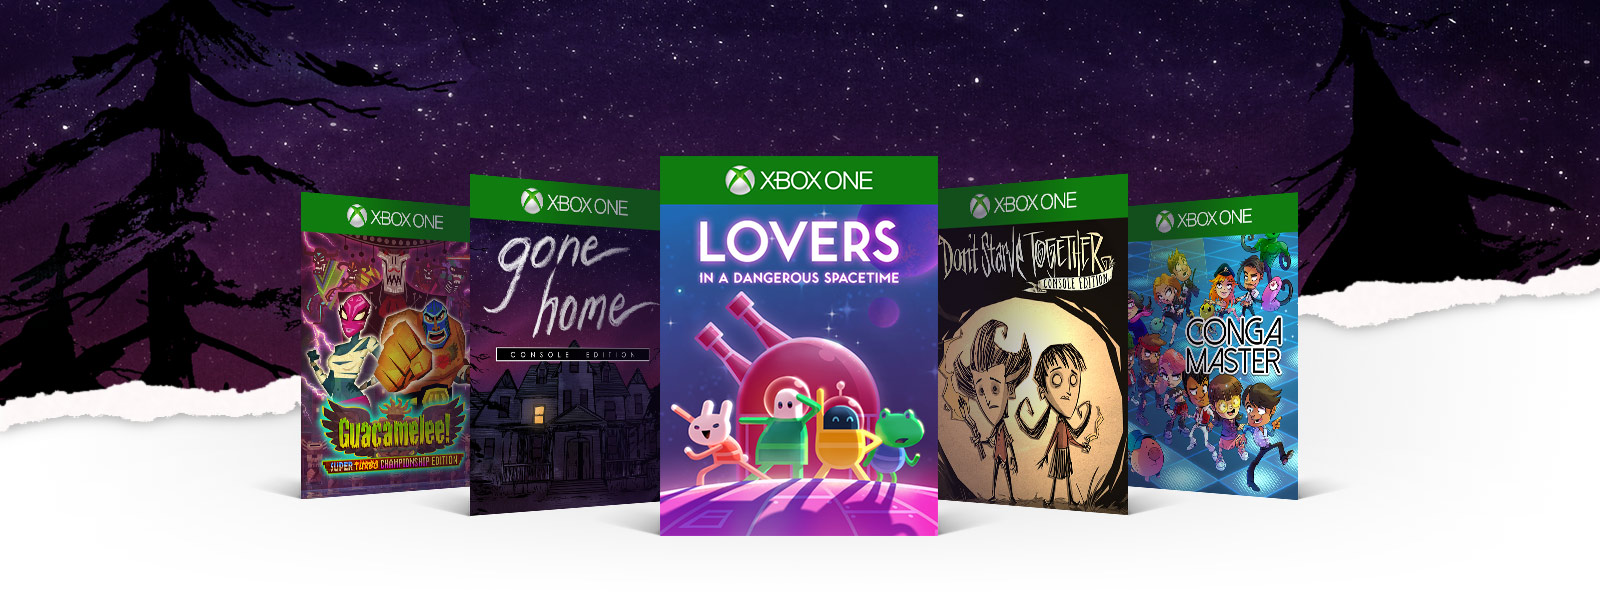 Xbox boxcshots of Guacamelee! Gone Home Lovers in a Dangerous Spacetime Don't Starve Together Conga Master